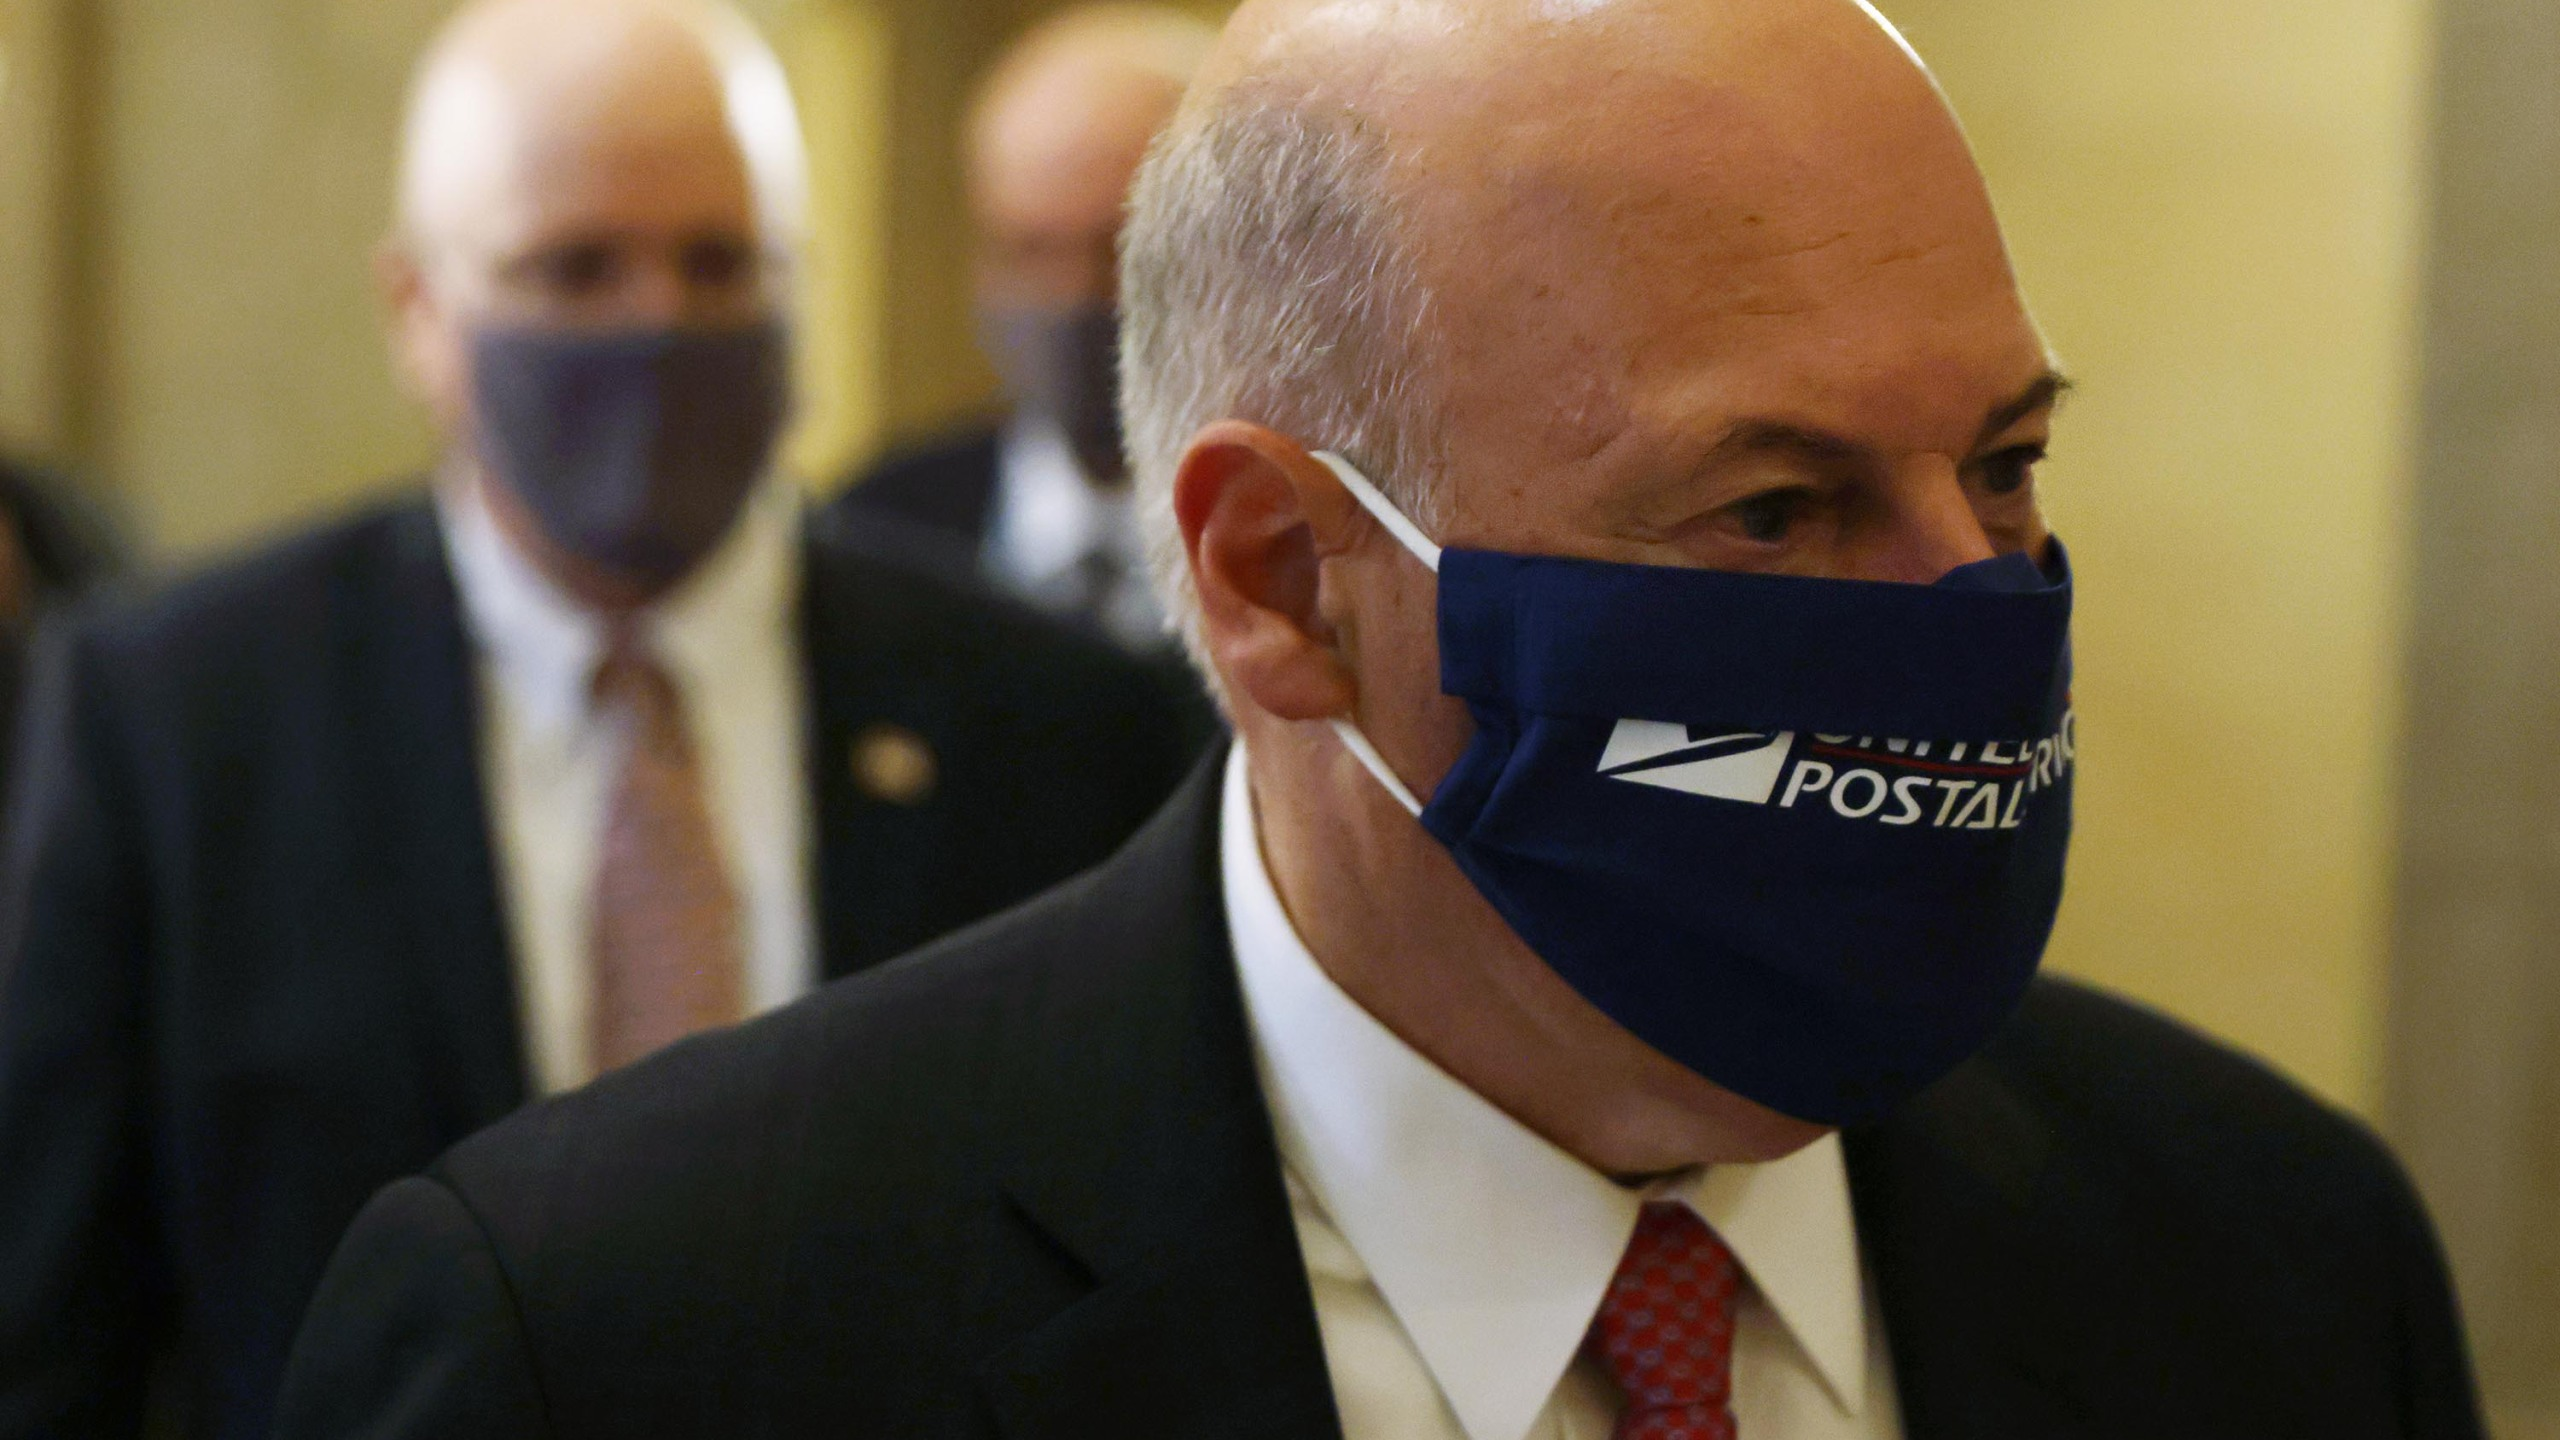 U.S. Postmaster General Louis Dejoy arrives at a meeting at the office of Speaker of the House Rep. Nancy Pelosi (D-CA) at the U.S. Capitol August 5, 2020 in Washington, DC. (Alex Wong/Getty Images)